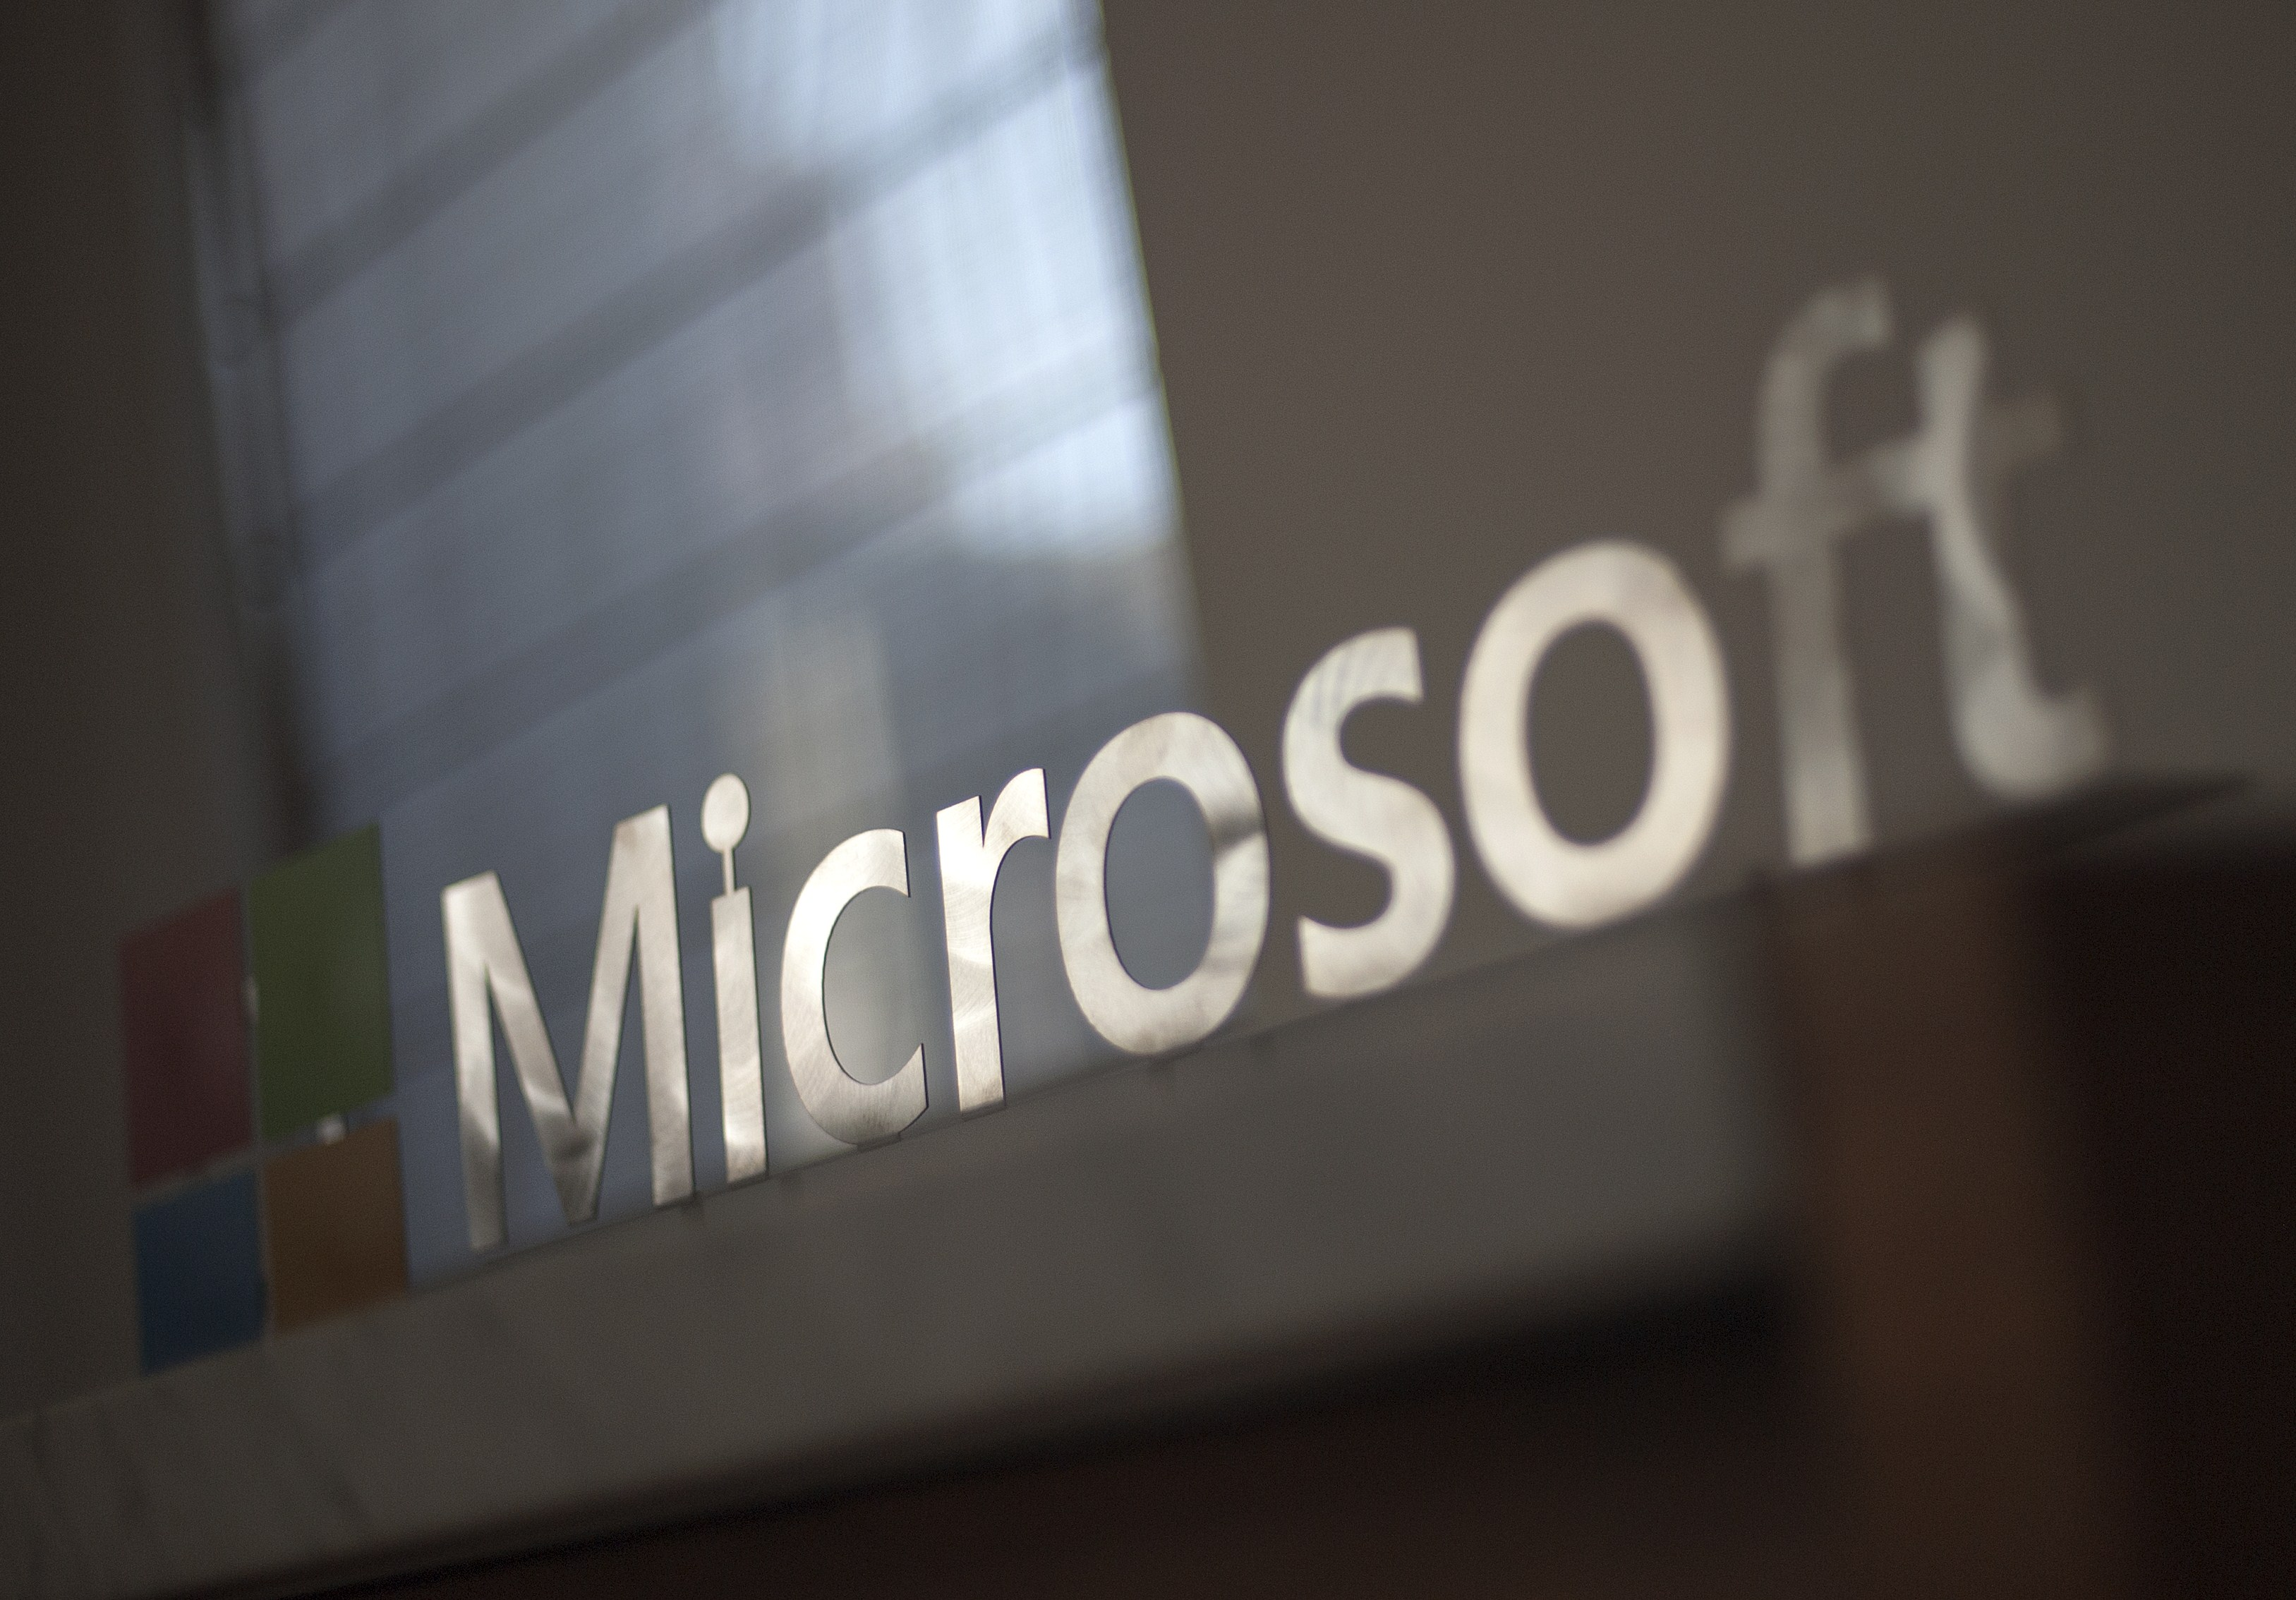 Microsoft's logo. Photo by Josh Edelson/AFP/Getty Images